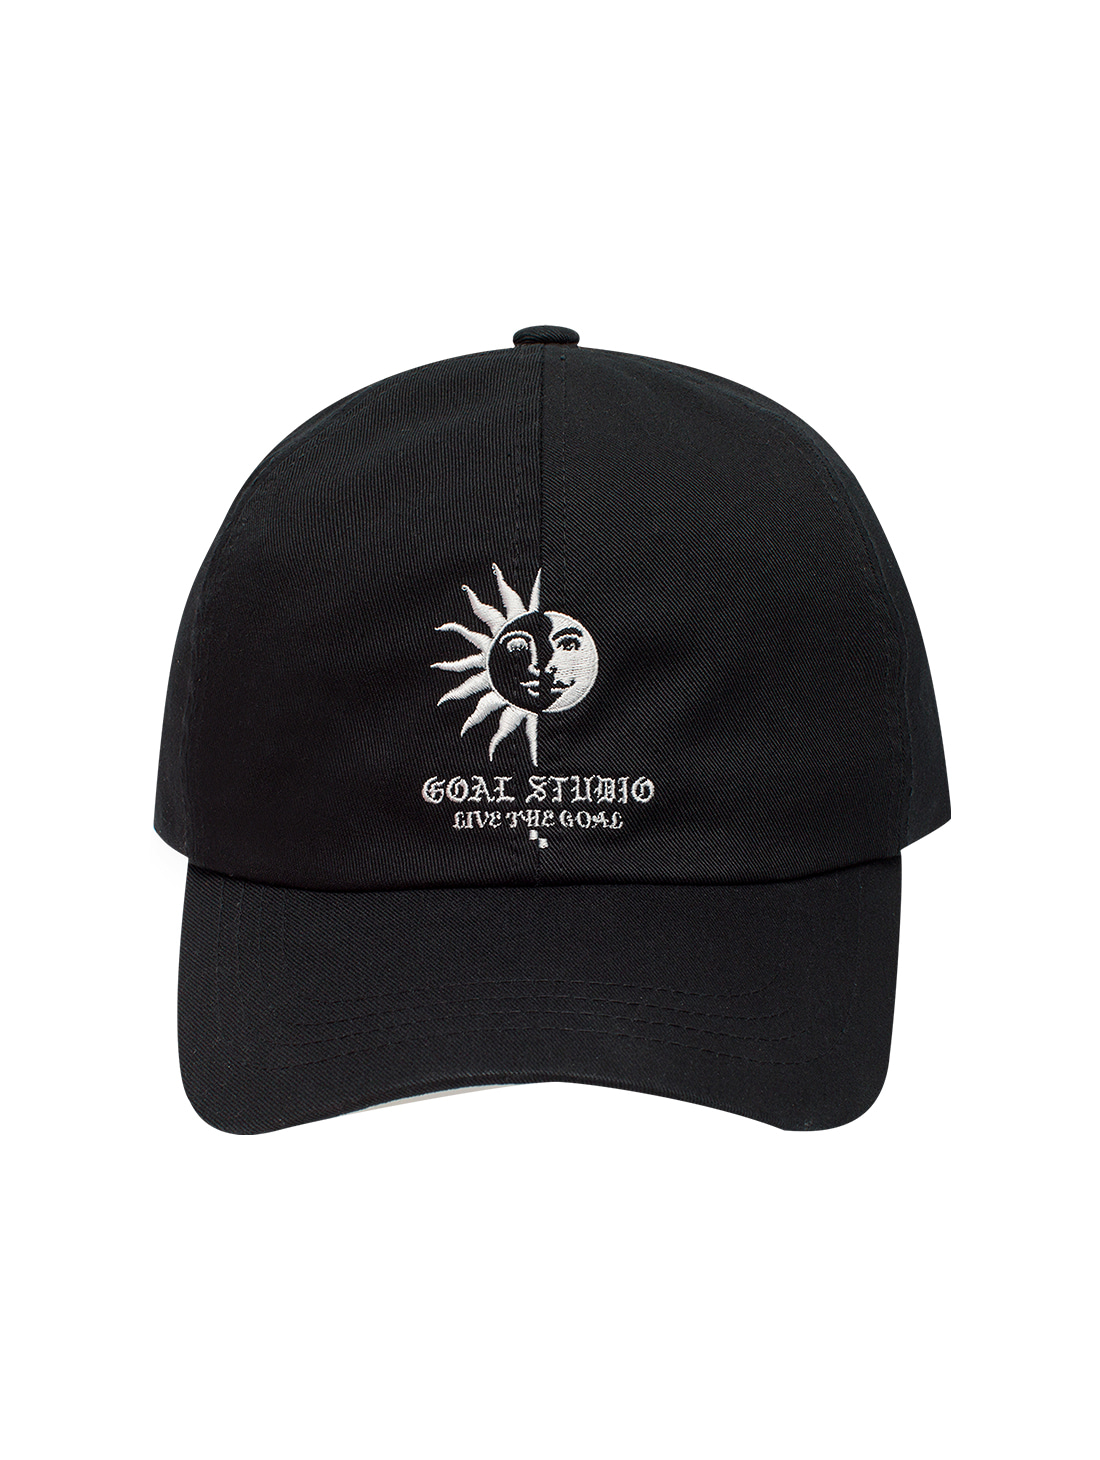 GOALSTUDIO MC BALL CAP - BLACK